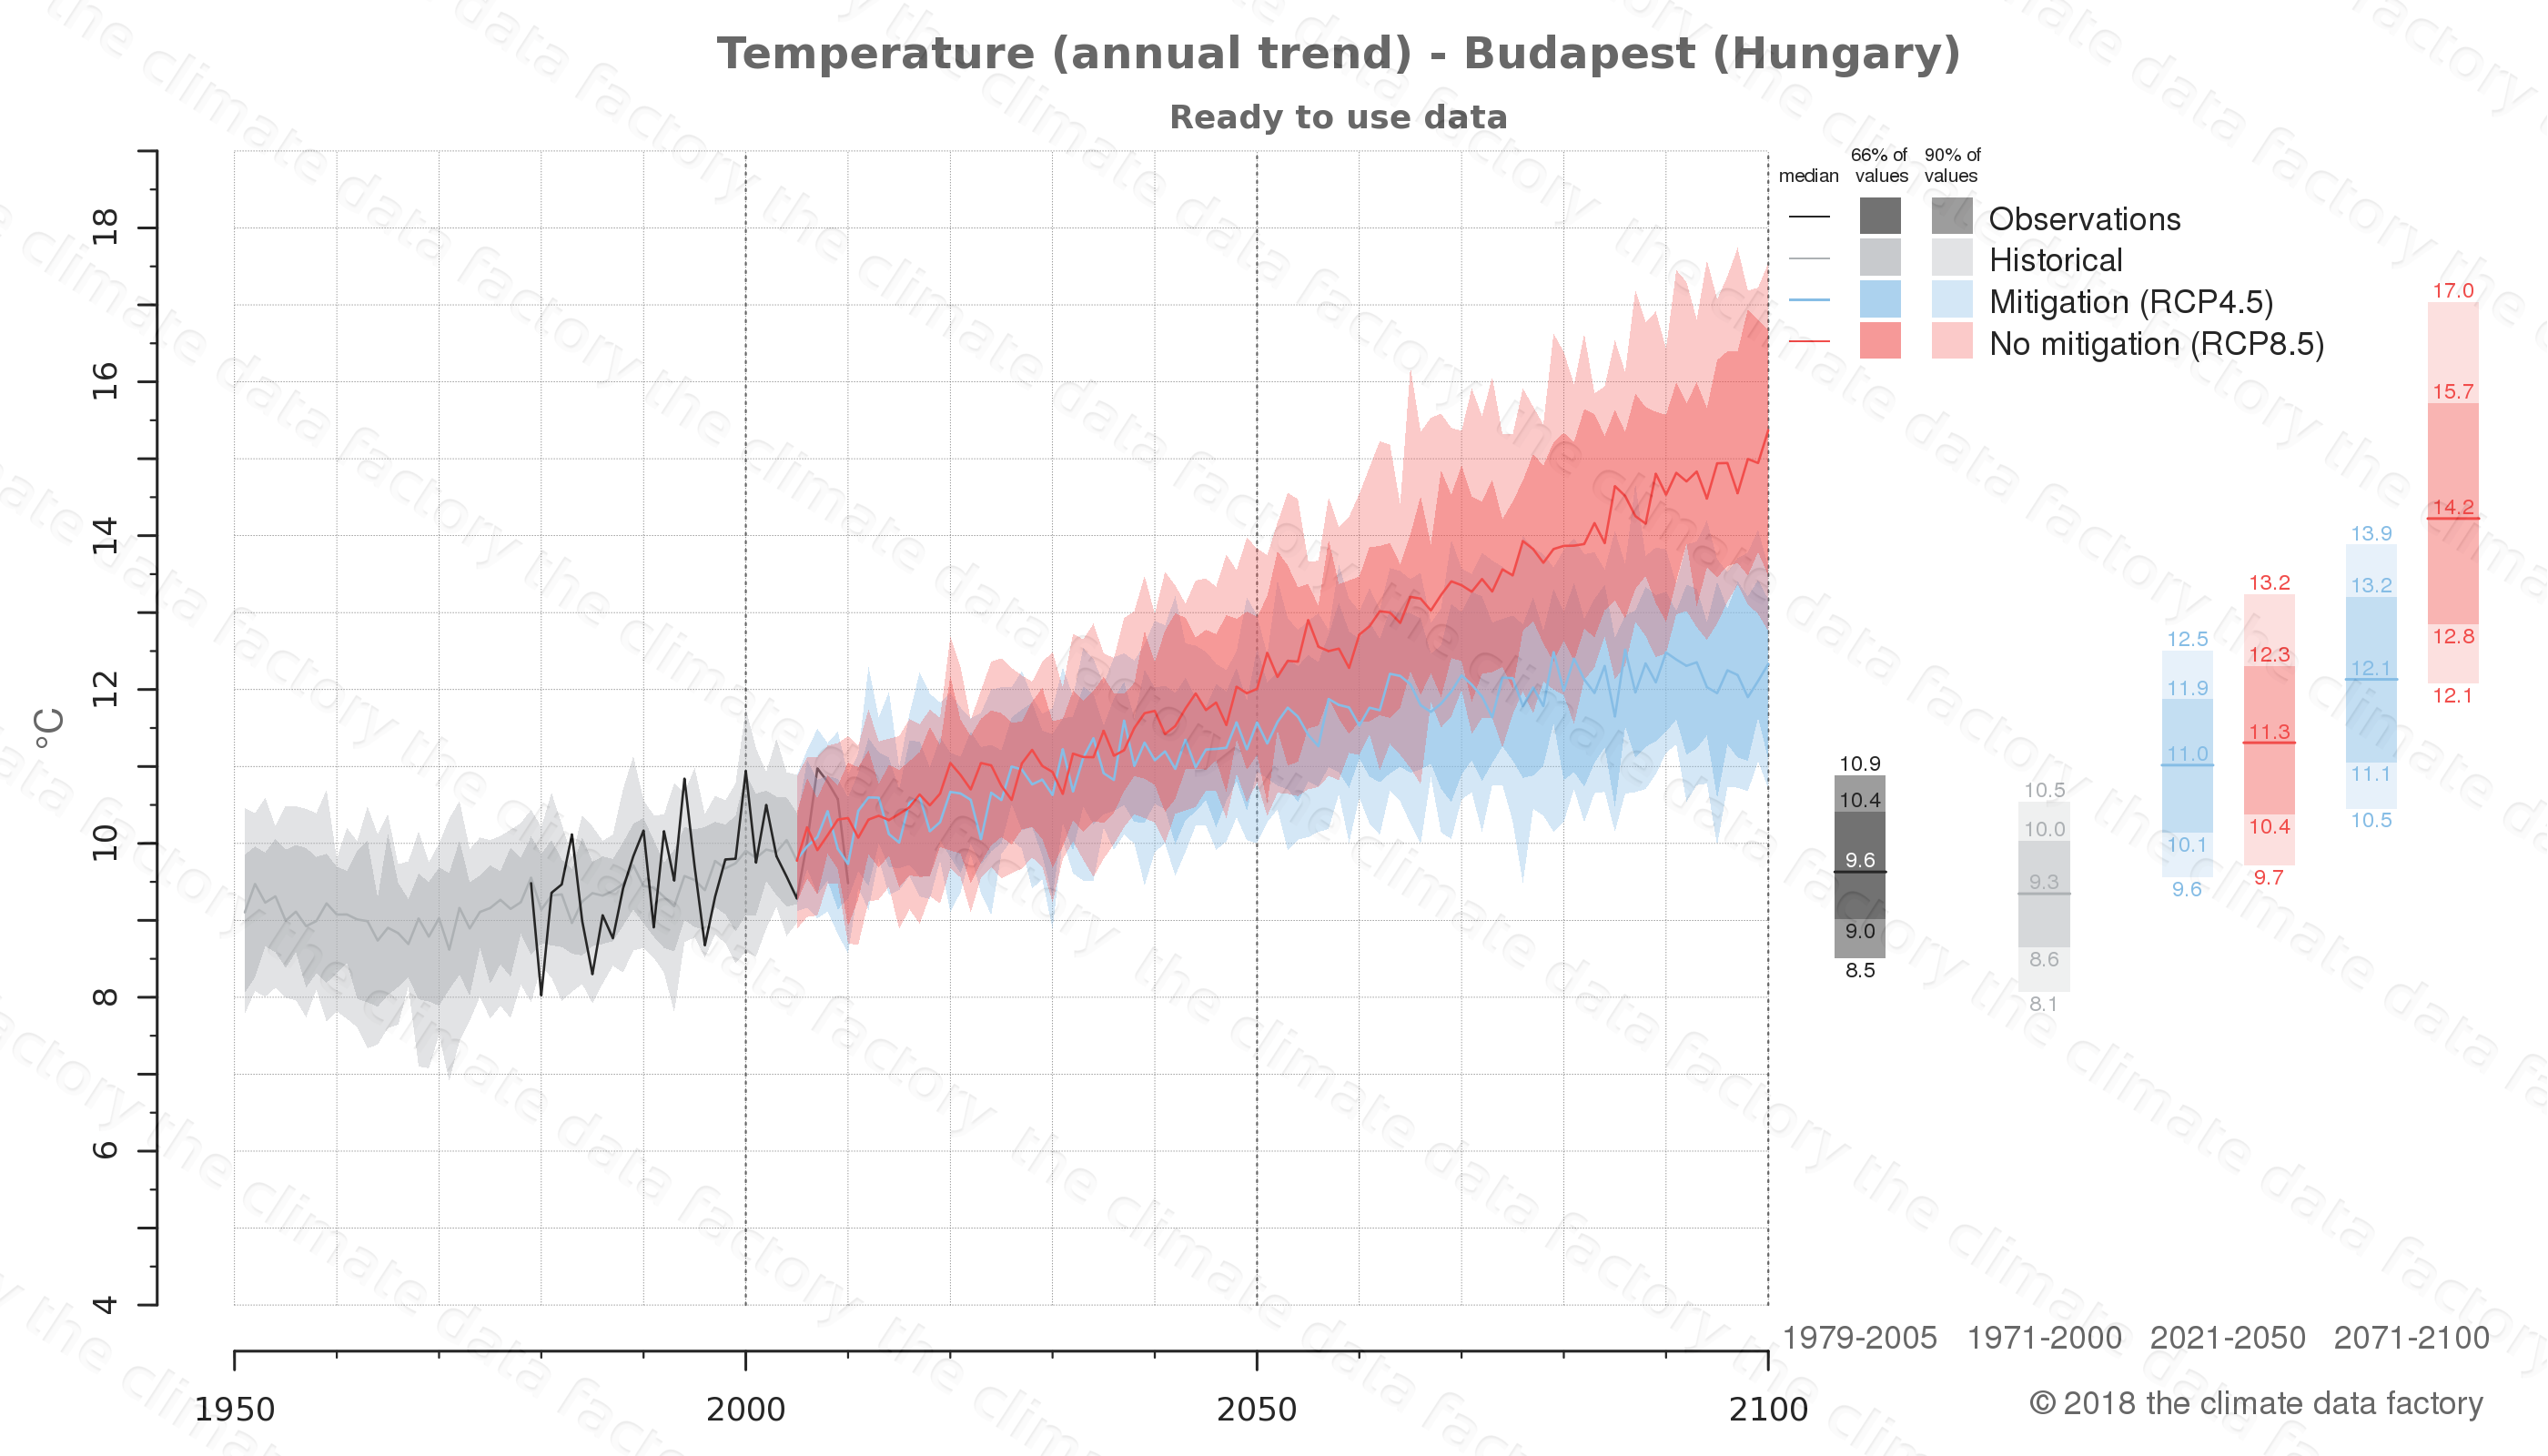 climate change data policy adaptation climate graph city data temperature budapest hungary